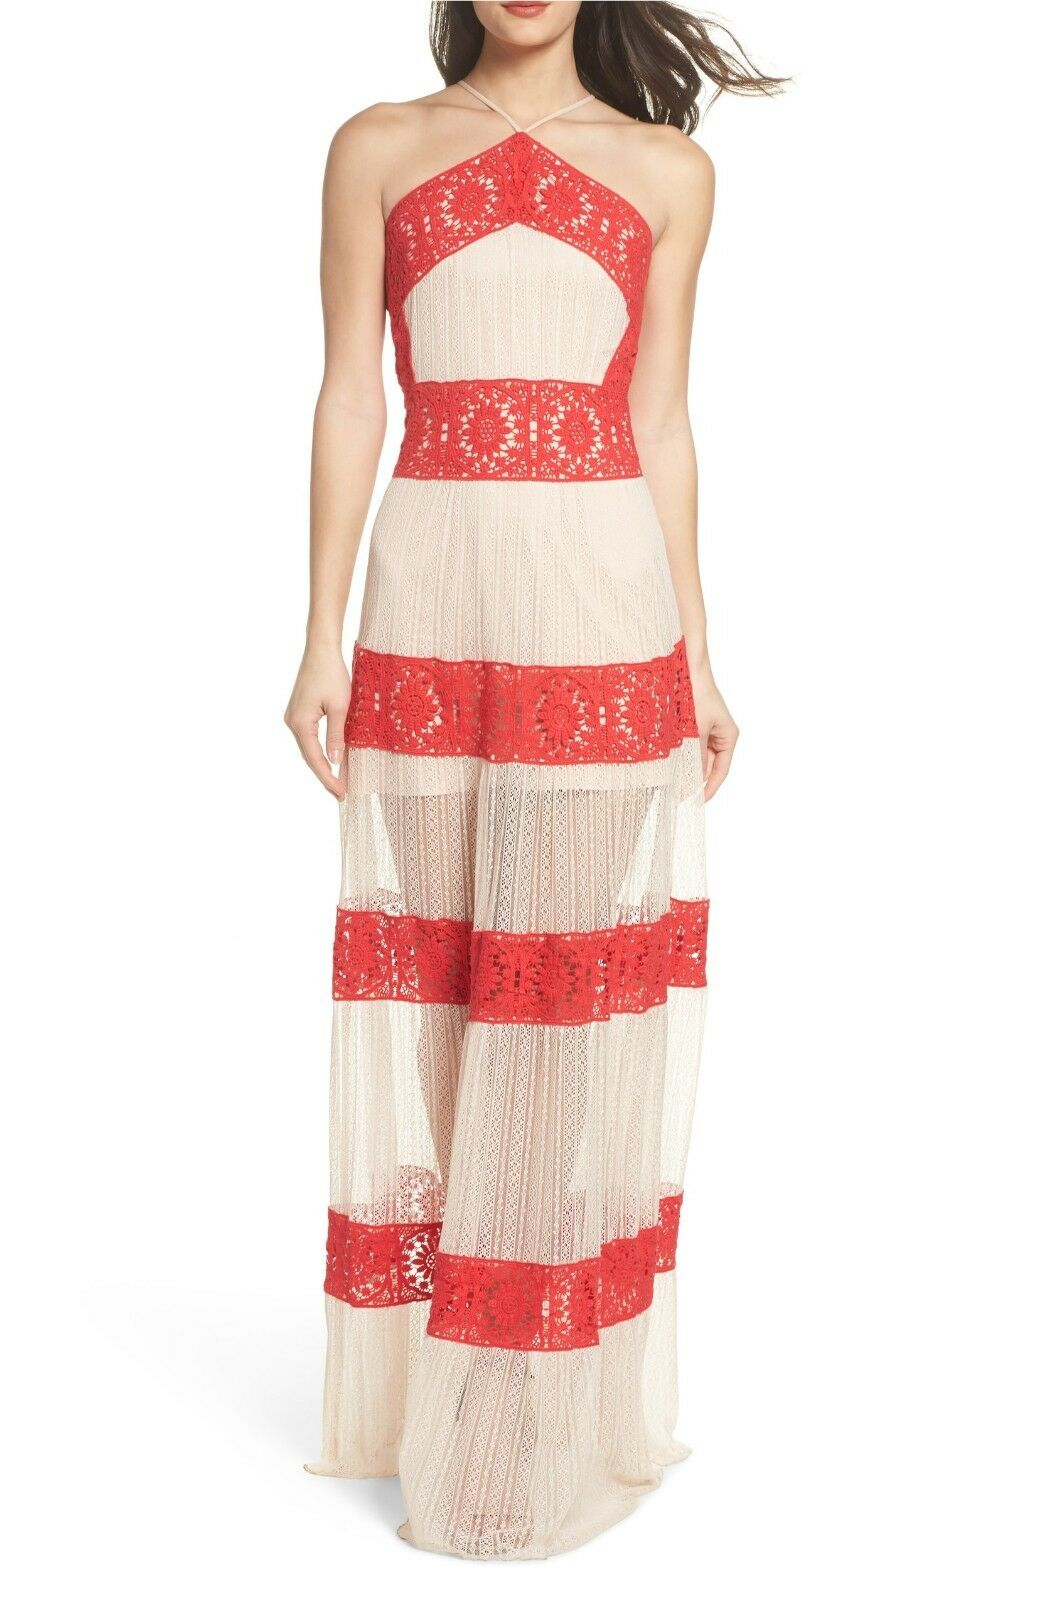 NEW FOXIEDOX Coral Red Nude Ophelia Two-Tone Lace Halter Sporty Maxi Dress XL 16